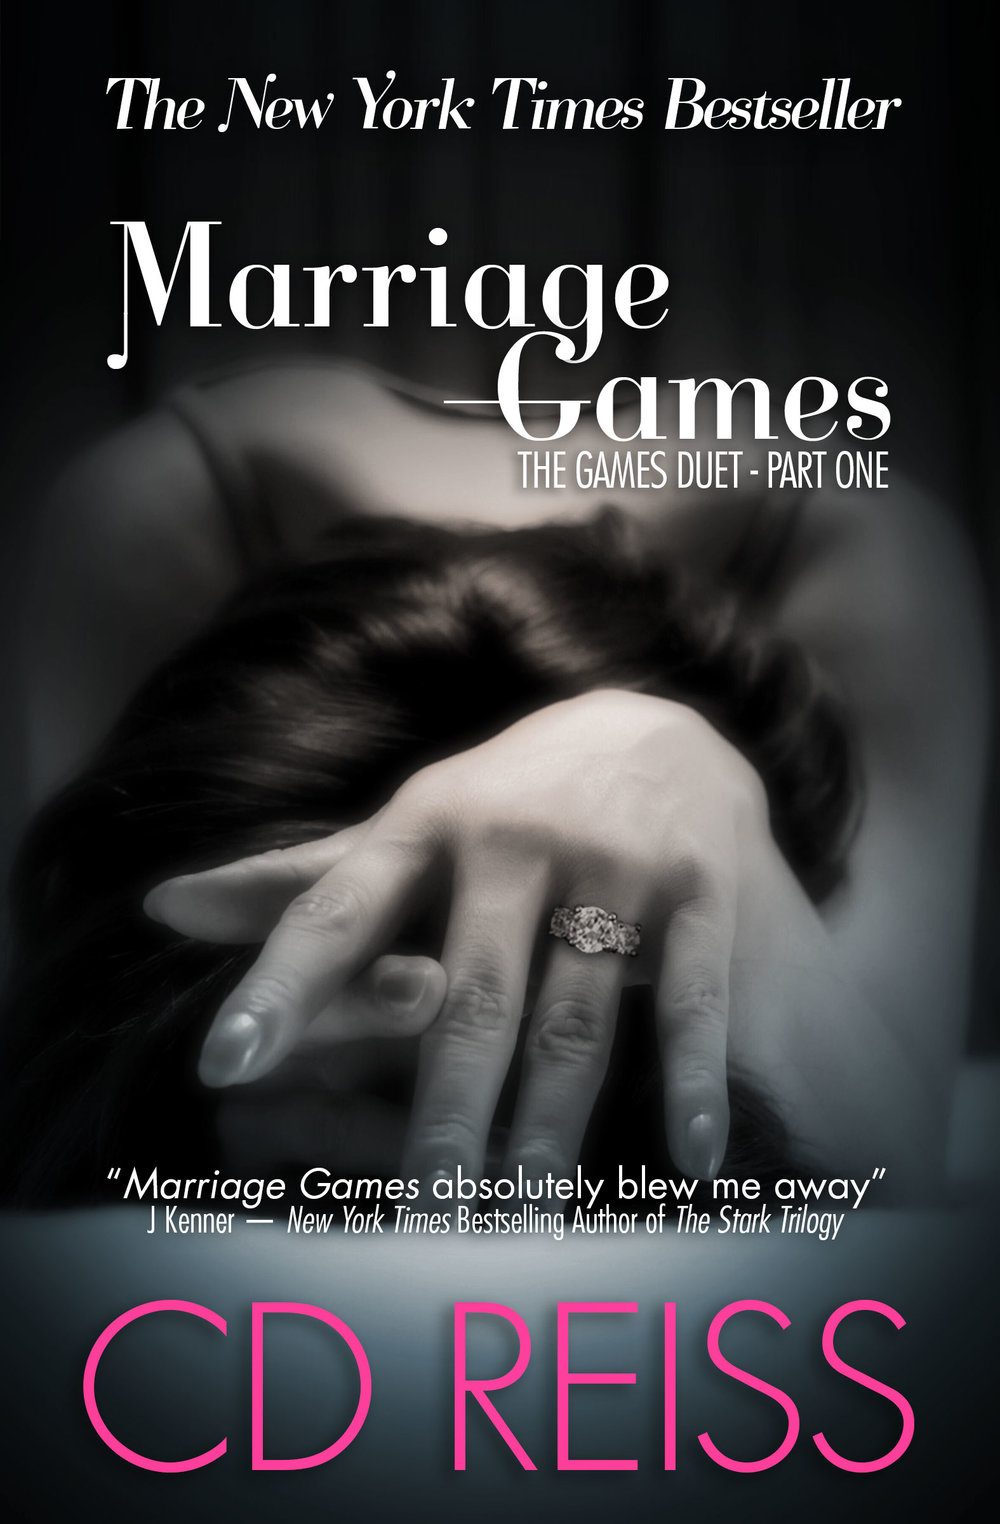 MARRIAGE-GAMES-cover-NYT-2.jpg